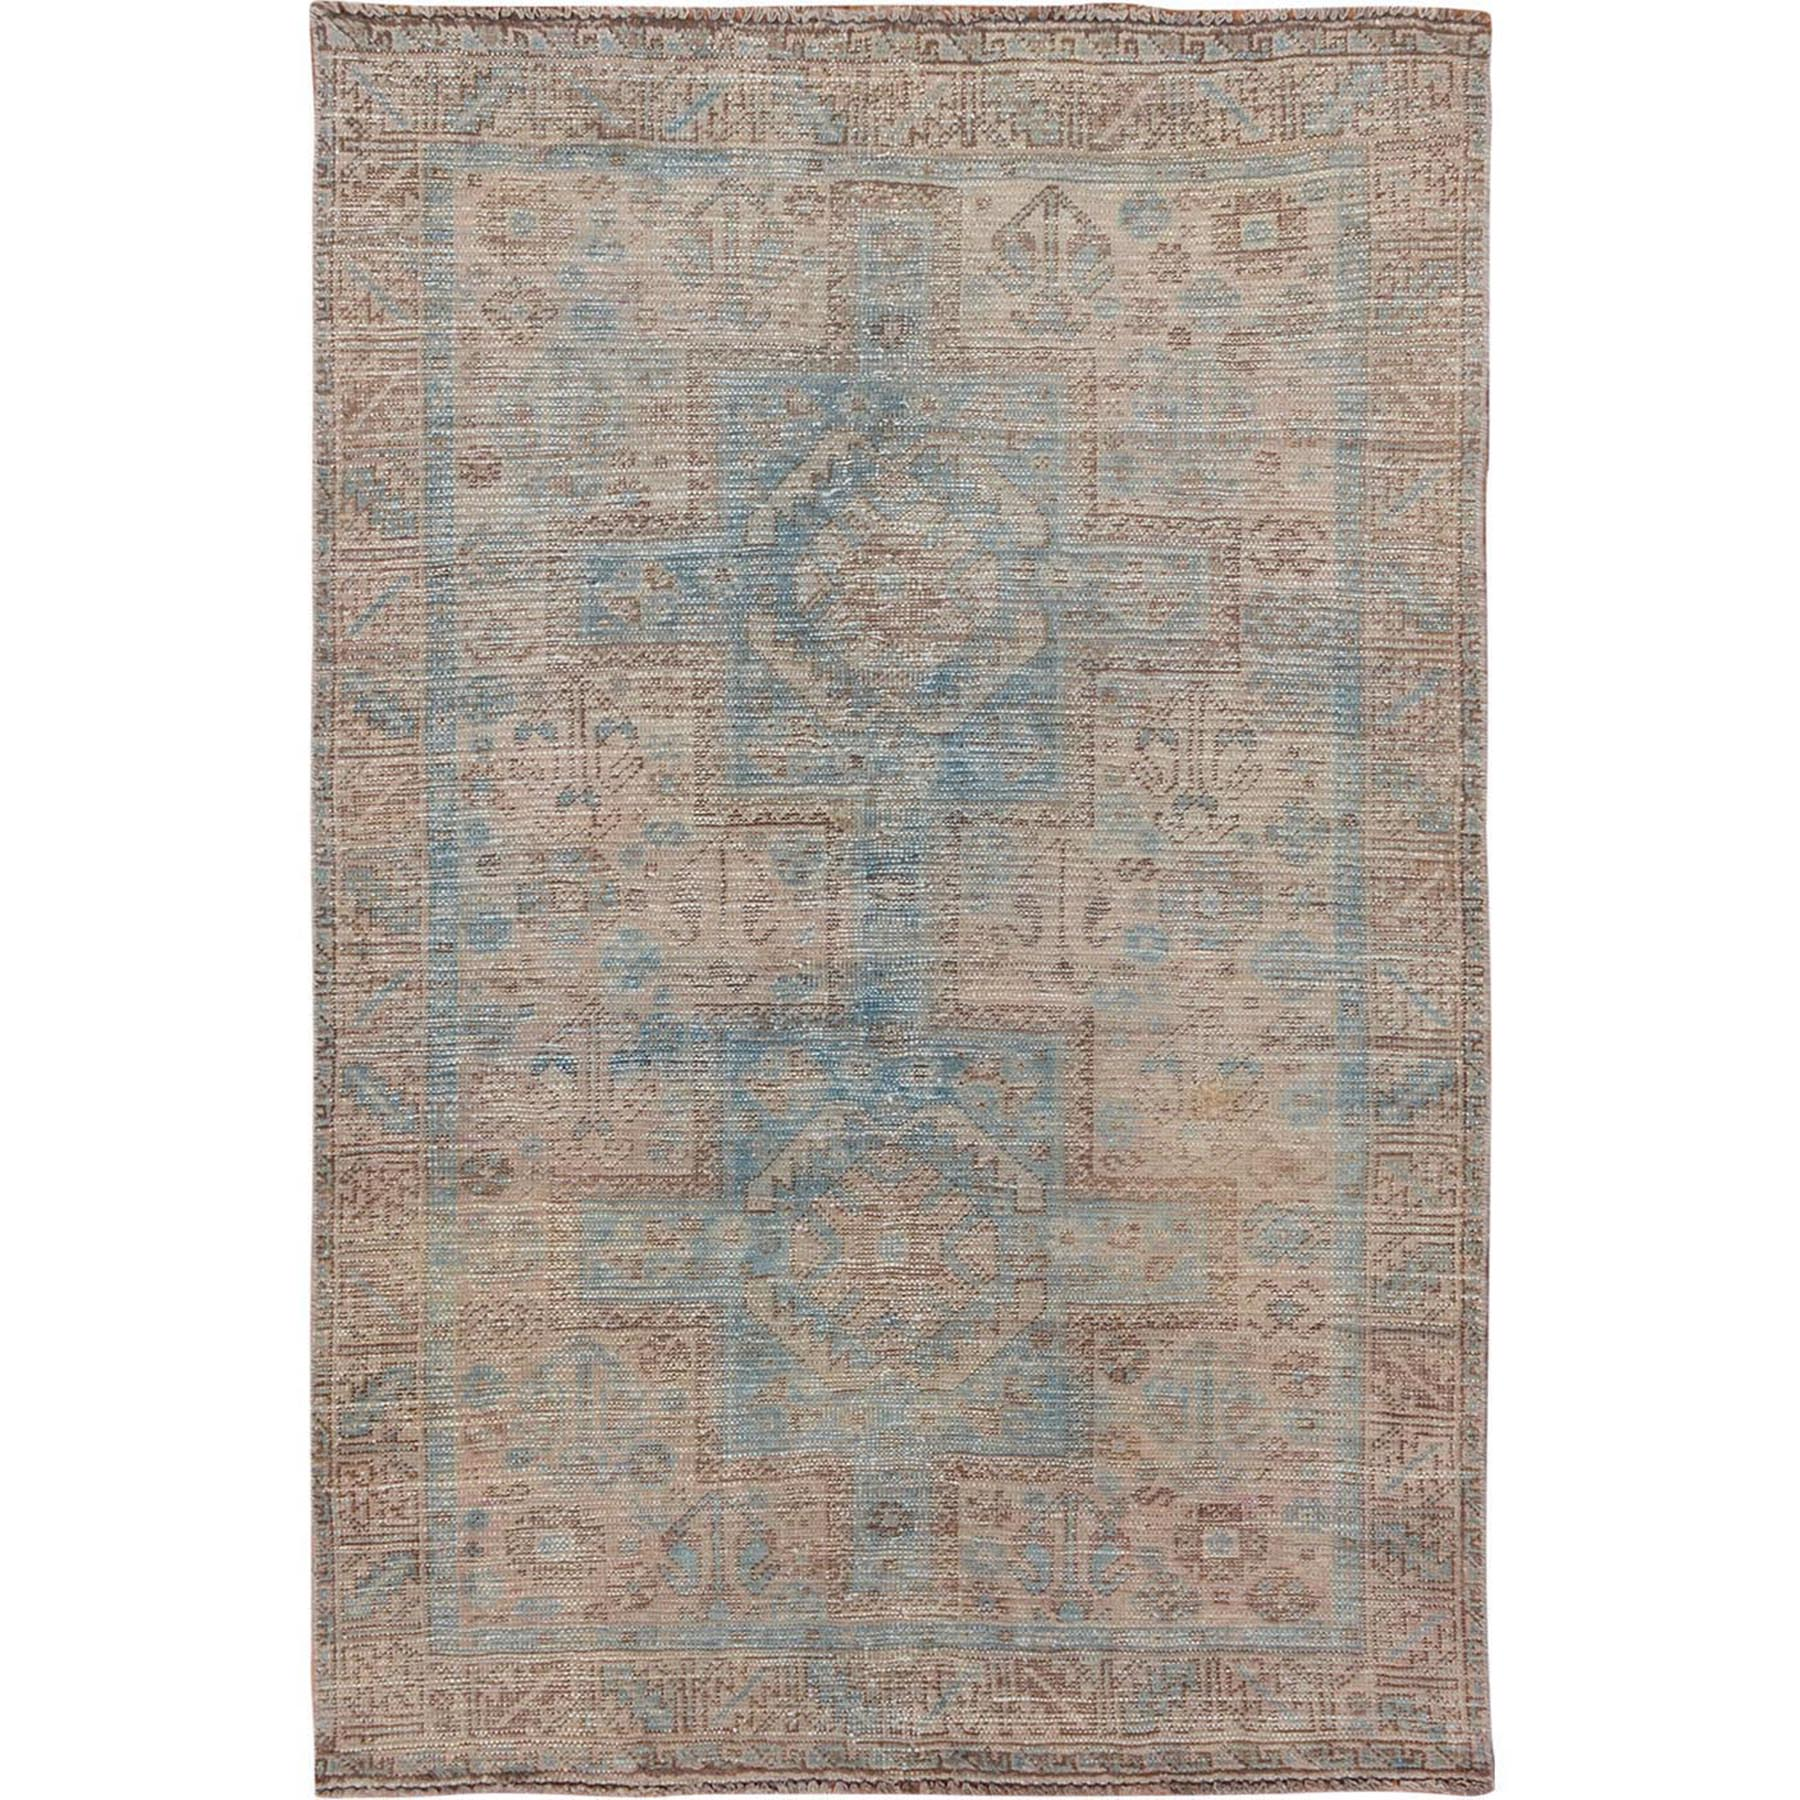 "3'9""x5'8"" Natural Colors With Blues Vintage and Worn Down Persian Shiraz Clean Pure Wool Hand Woven Oriental Rug"